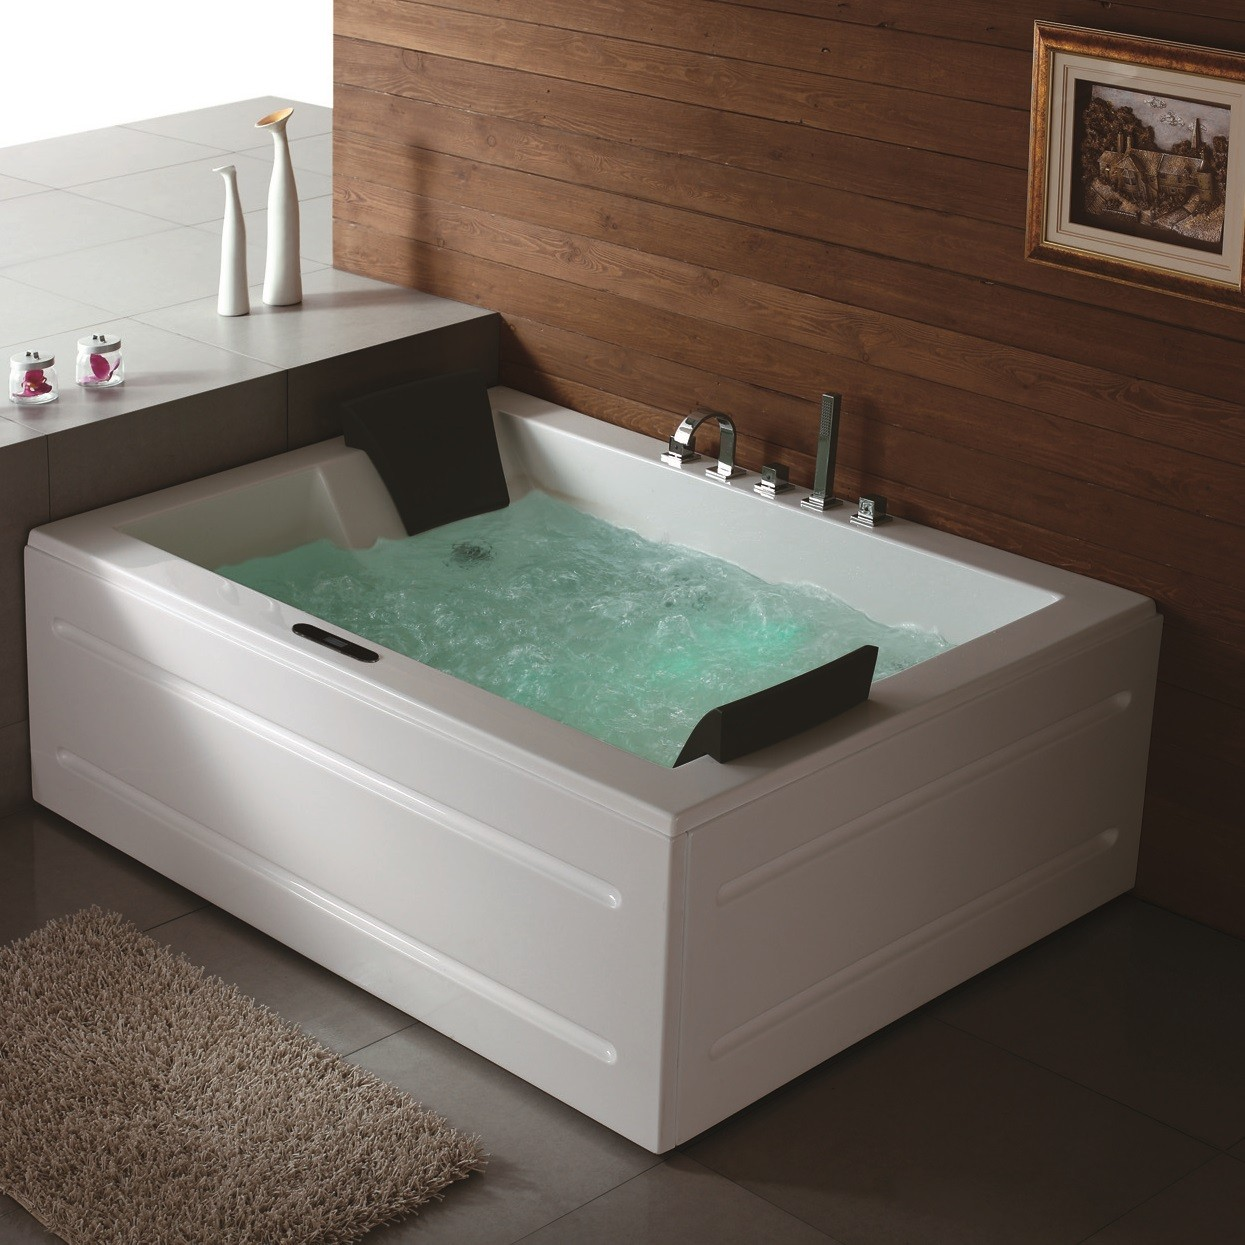 whirlpool tub. Astoria Luxury Whirlpool Tub